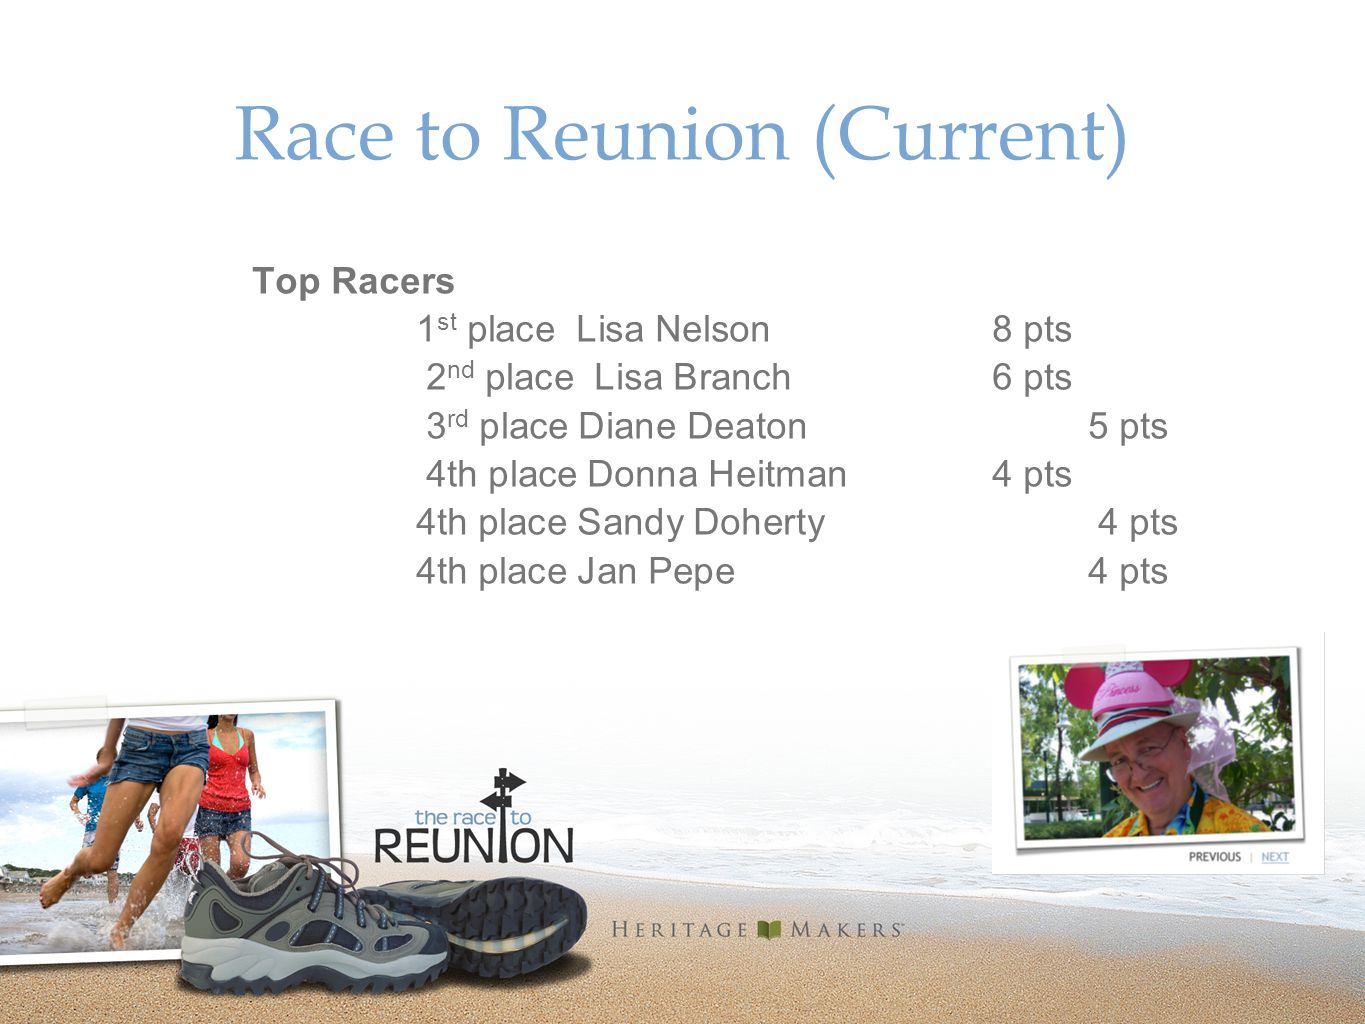 Race to Reunion (Current) Top Racers 1 st place Lisa Nelson 8 pts 2 nd place Lisa Branch 6 pts 3 rd place Diane Deaton 5 pts 4th place Donna Heitman4 pts 4th place Sandy Doherty 4 pts 4th place Jan Pepe 4 pts